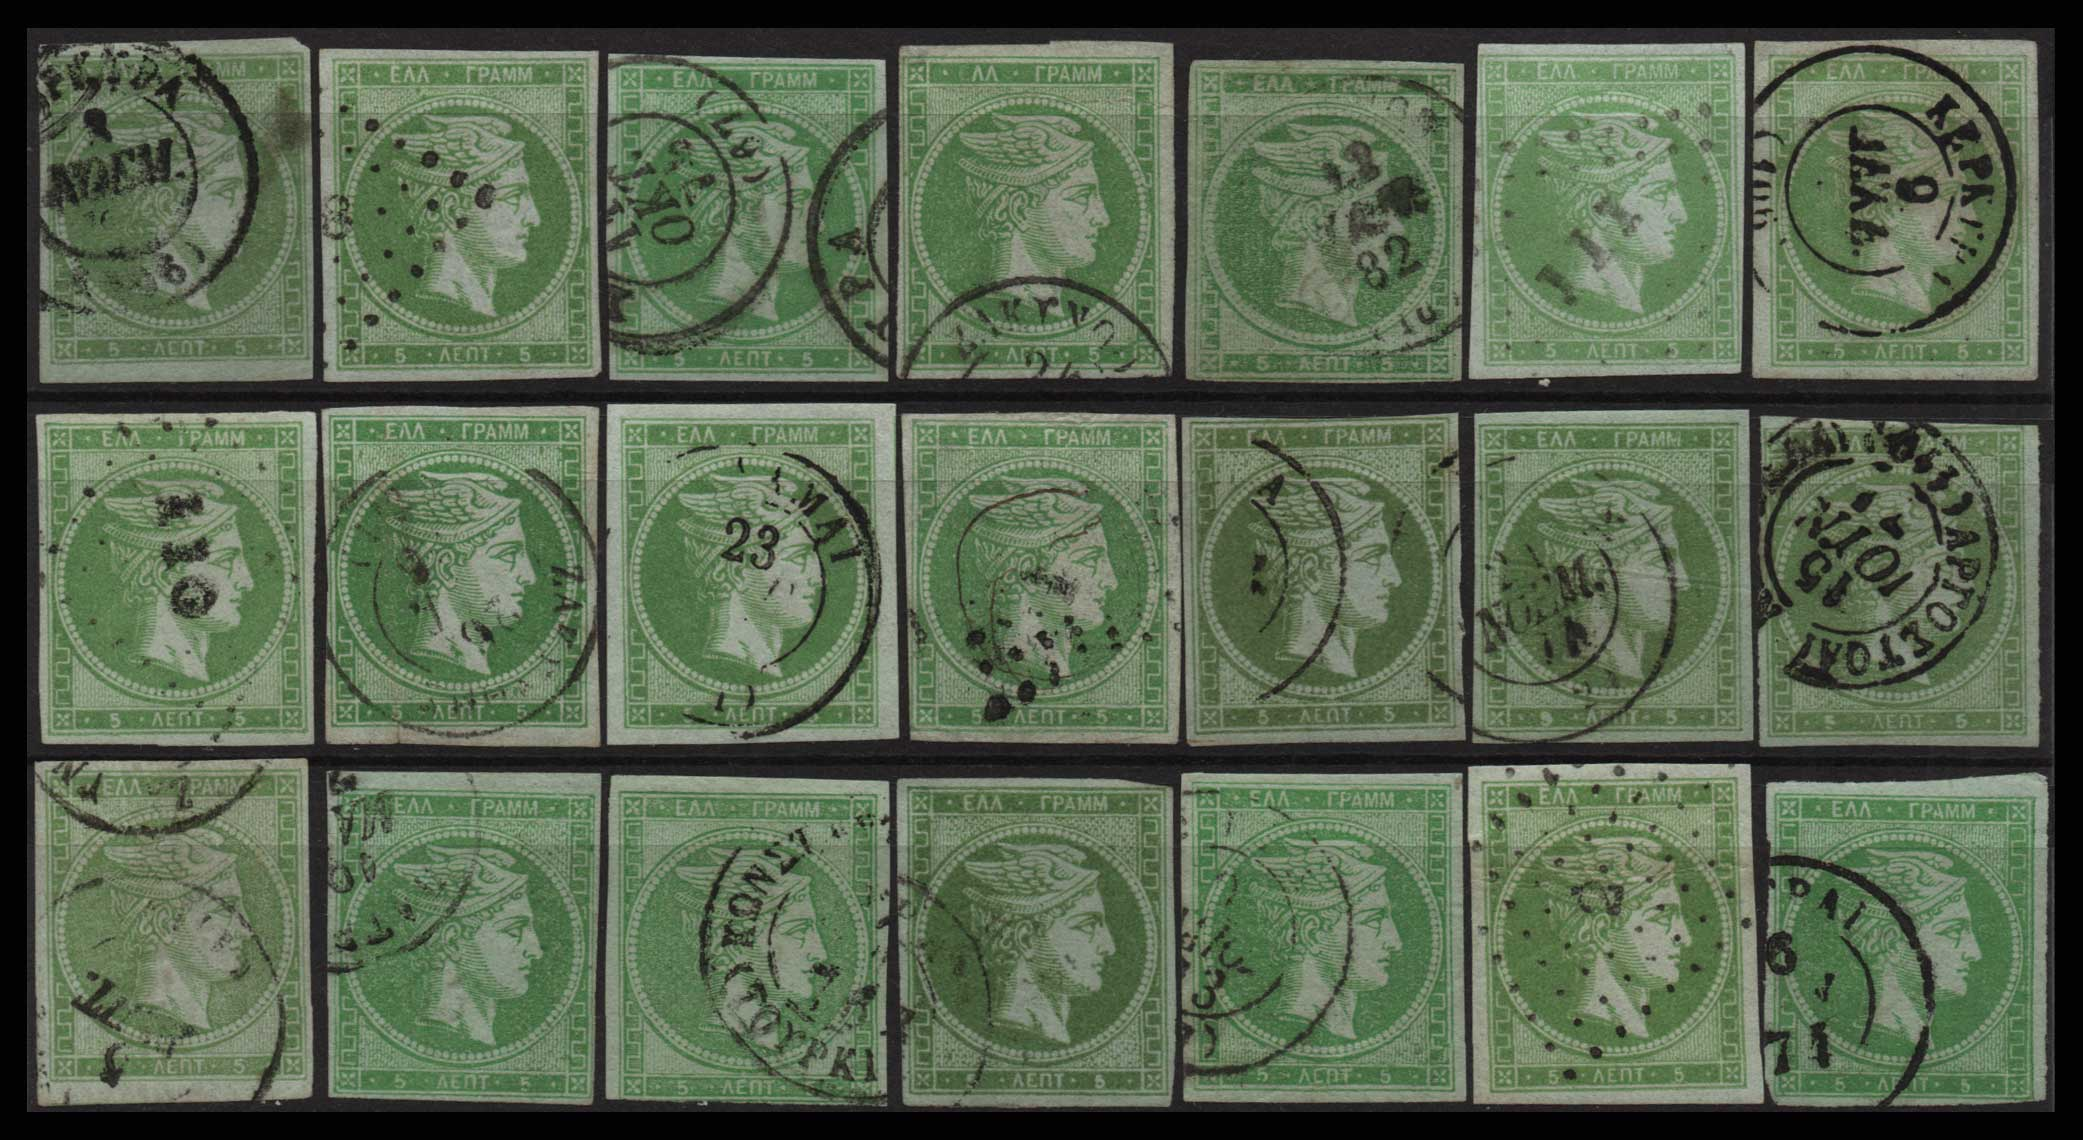 Lot 21 - -  LARGE HERMES HEAD large hermes head -  Athens Auctions Public Auction 83 General Stamp Sale